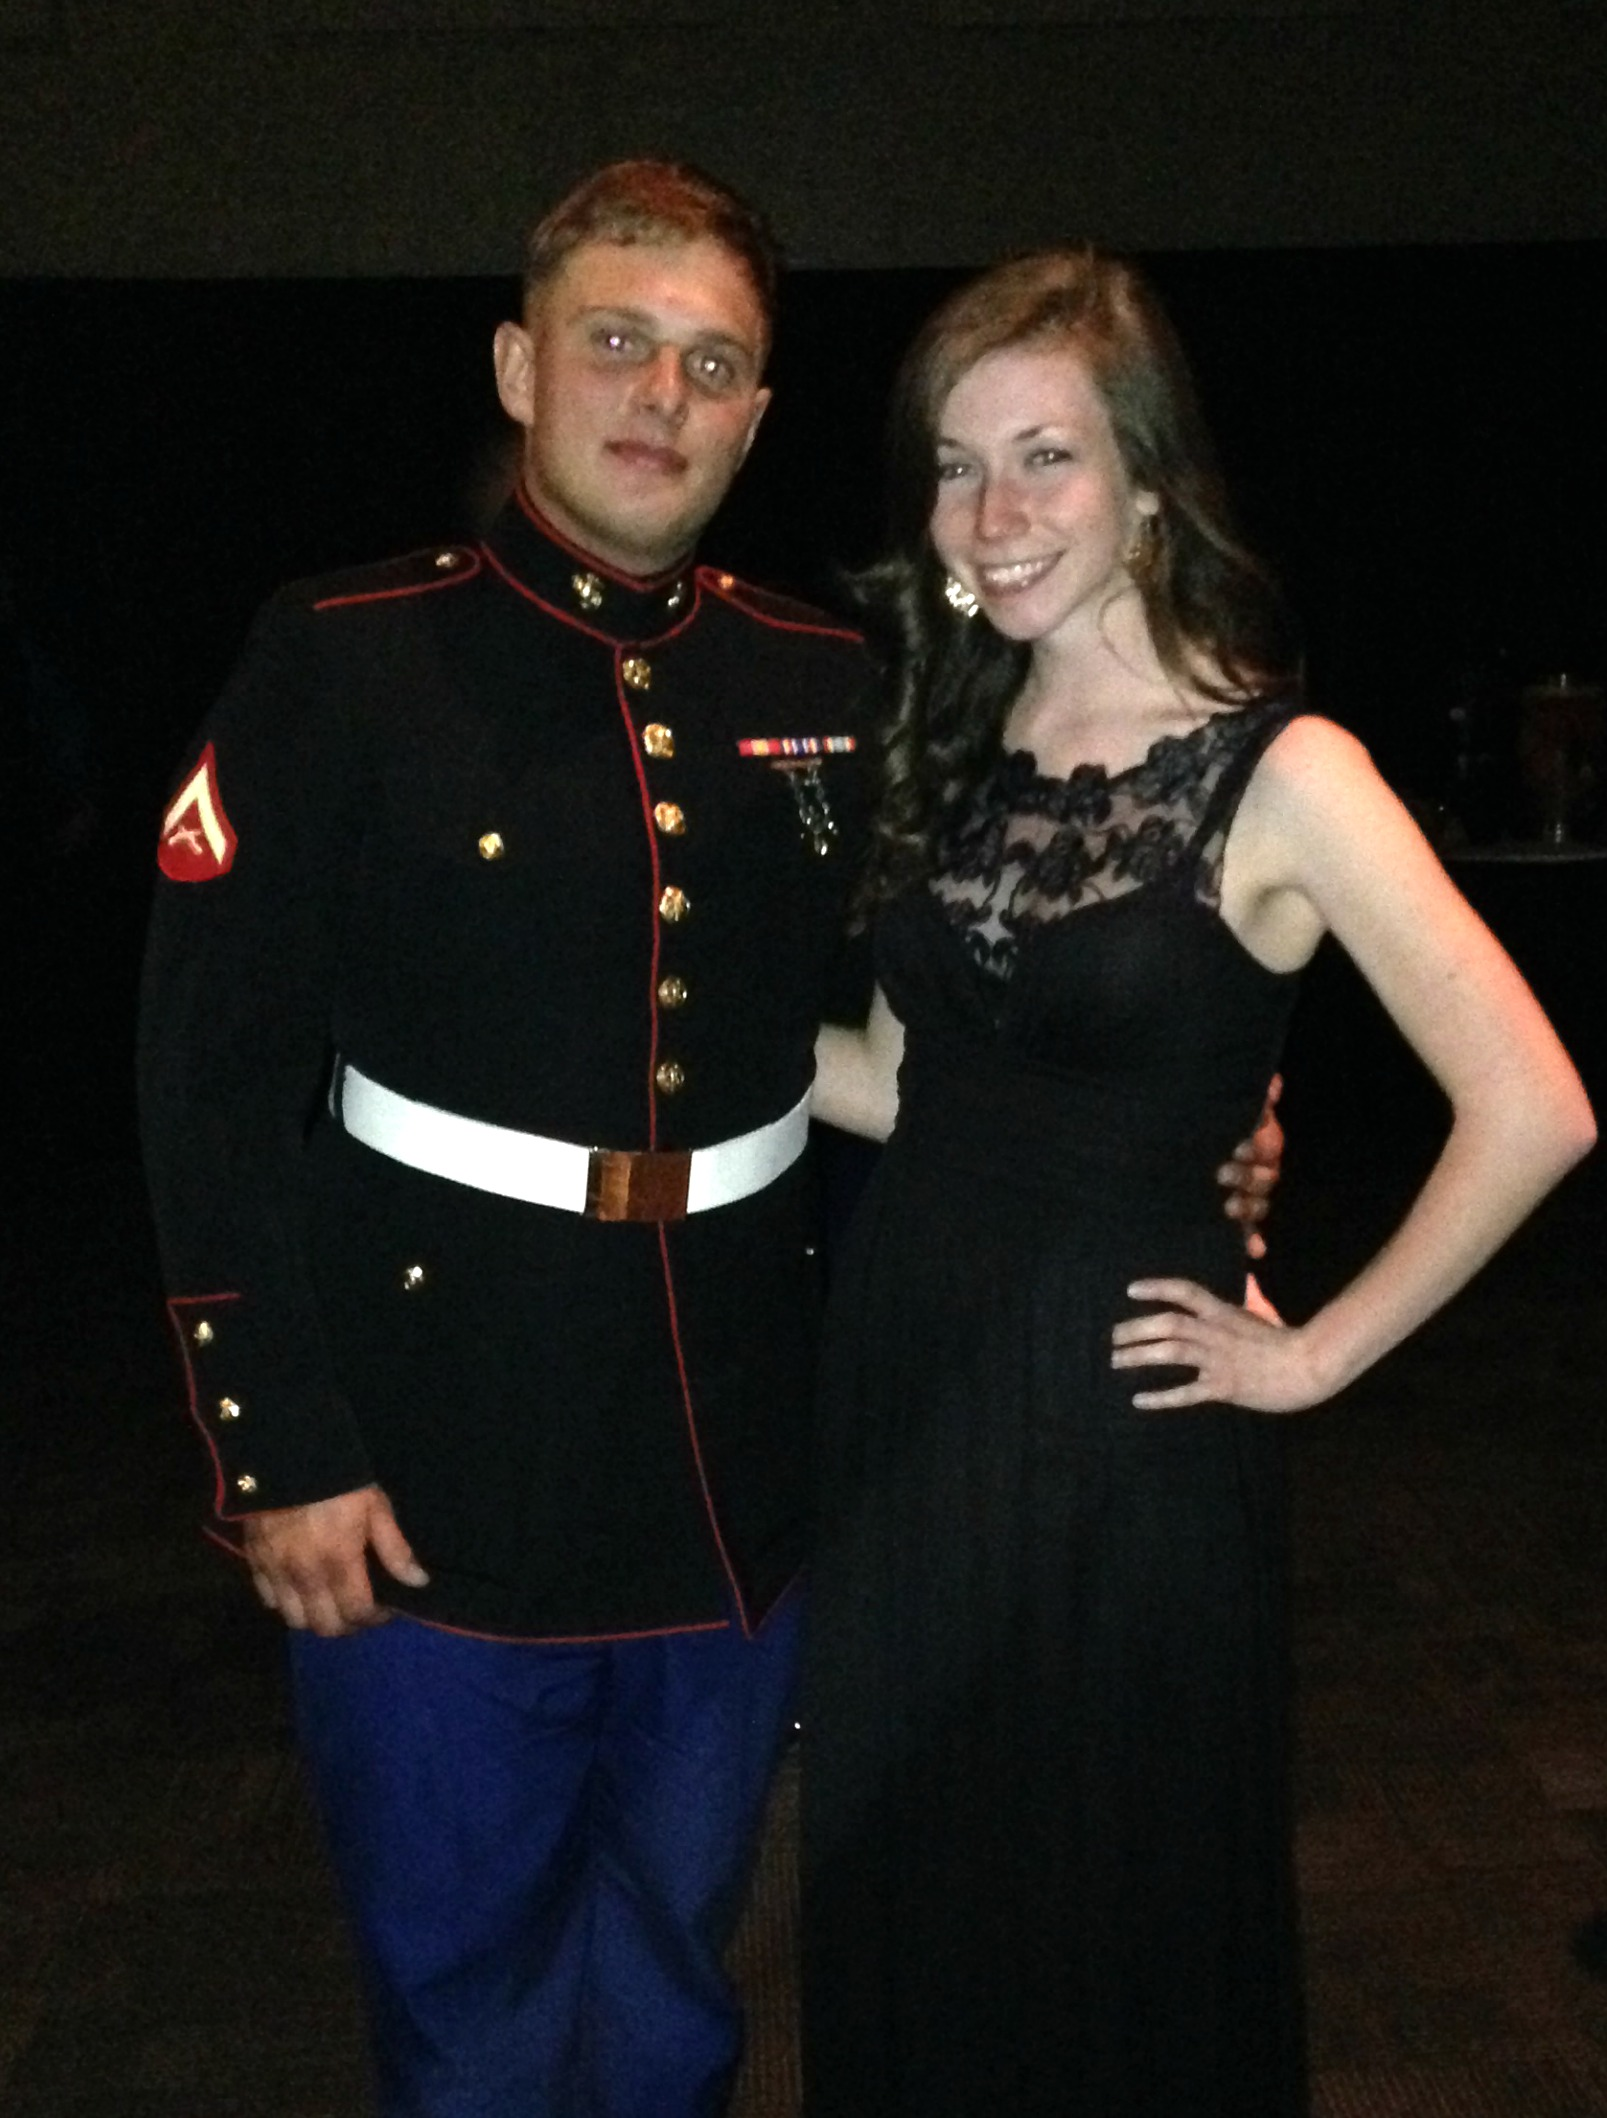 Marine Corps Ball Dress Code - Fashion dresses